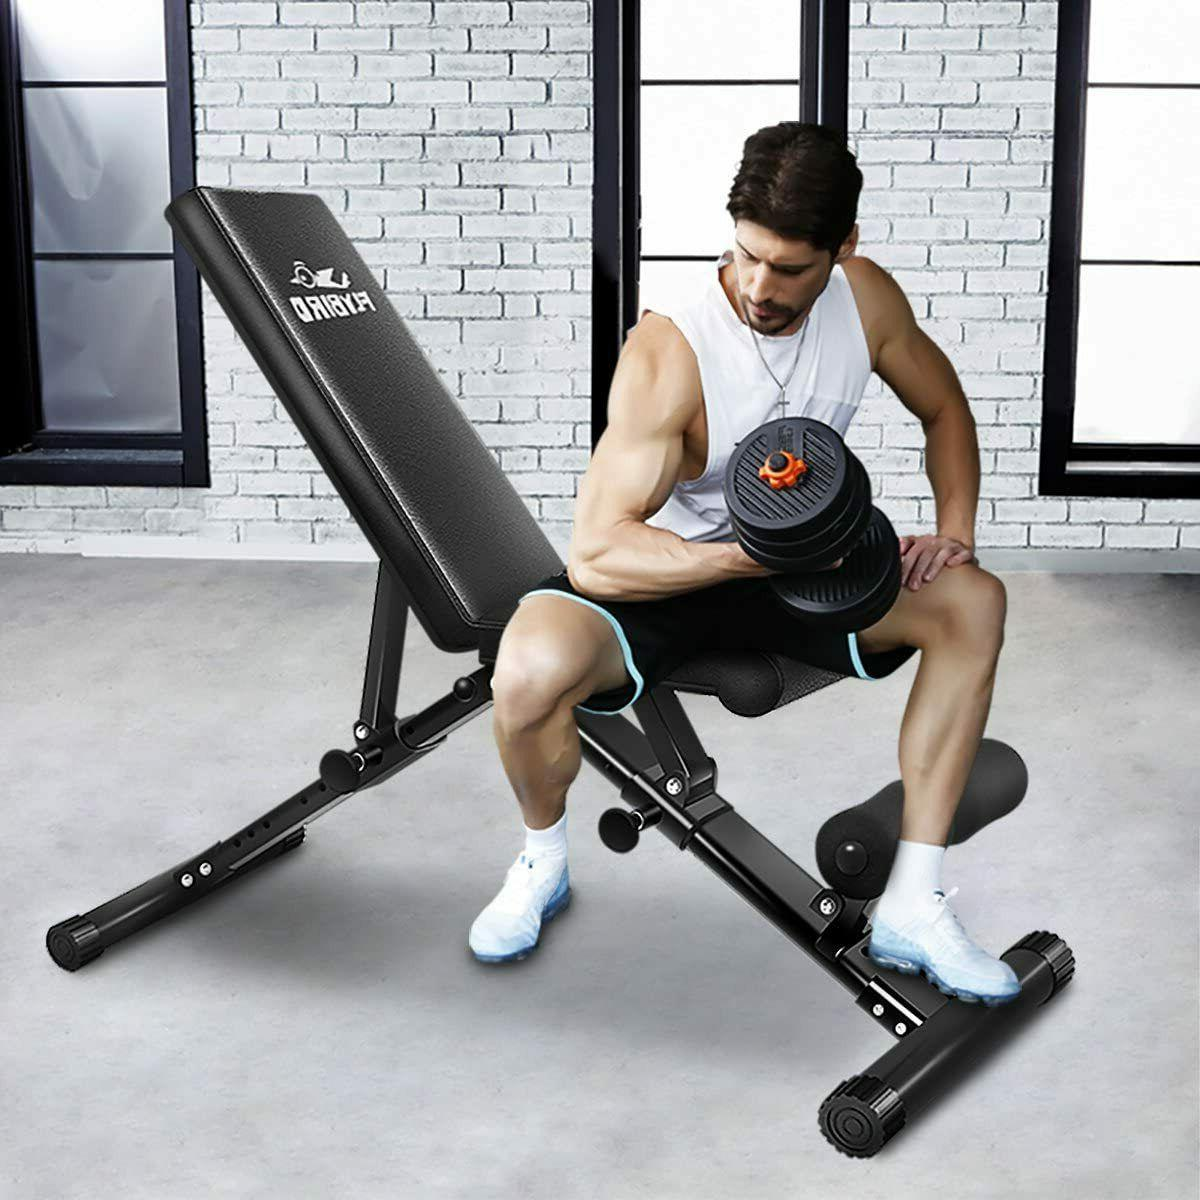 FlyBird Adjustable Weight Incline Foldable Full